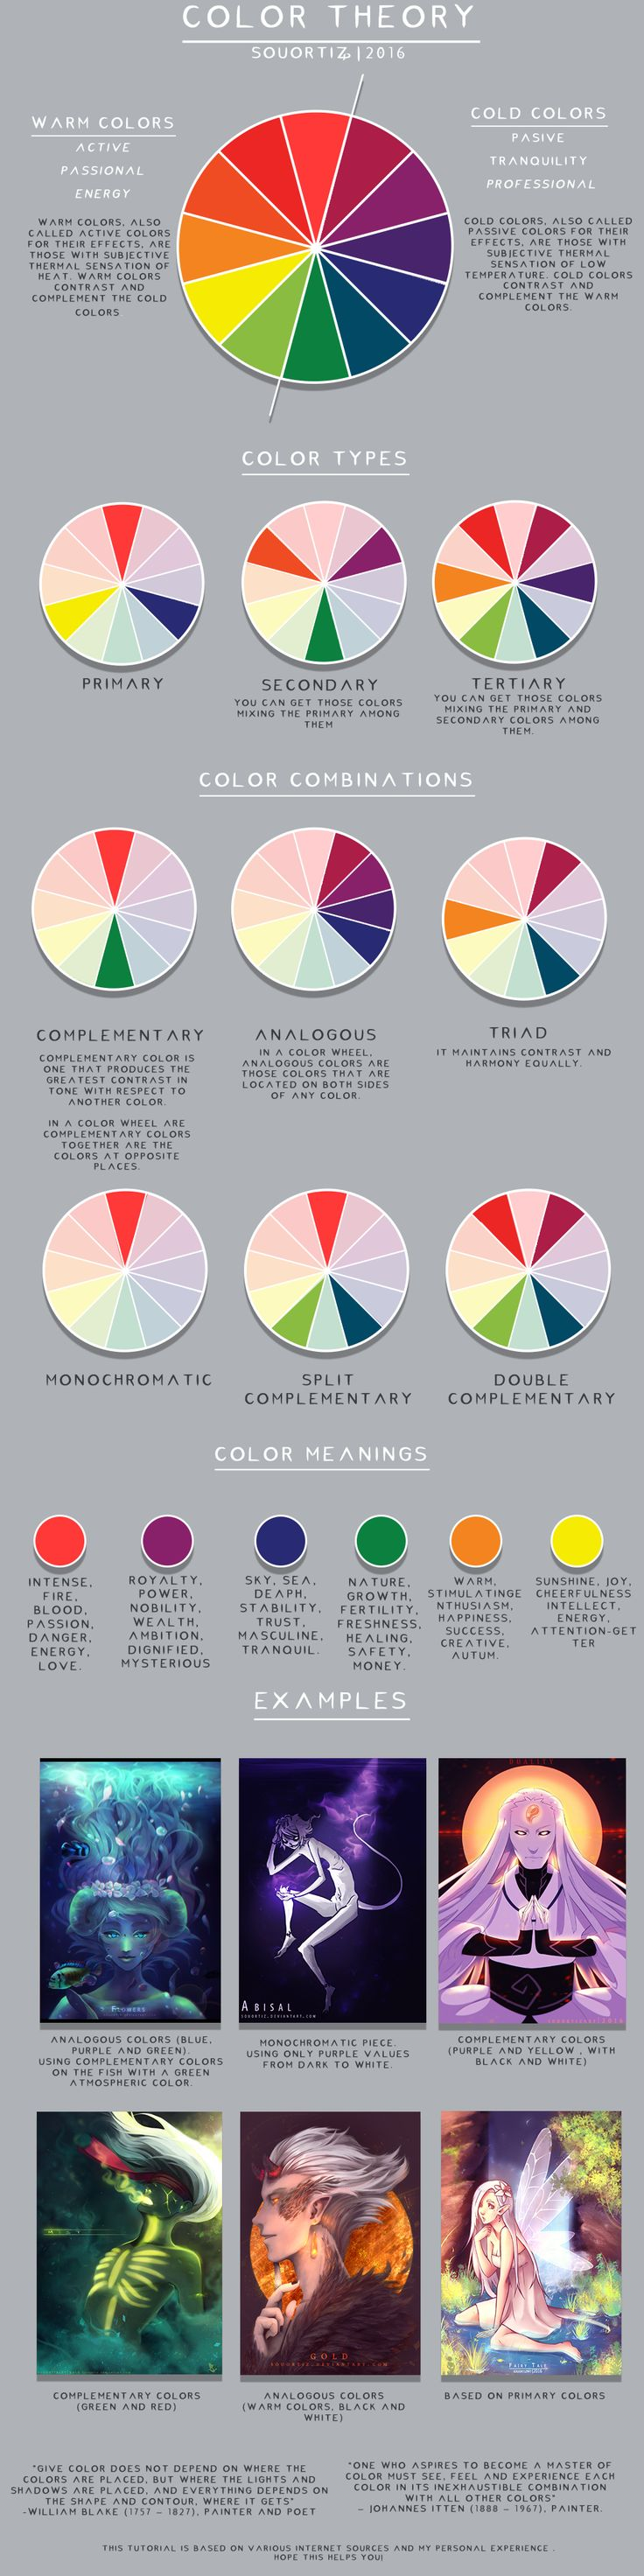 Color theory online games - Color Theory Tutorial By Souortiz